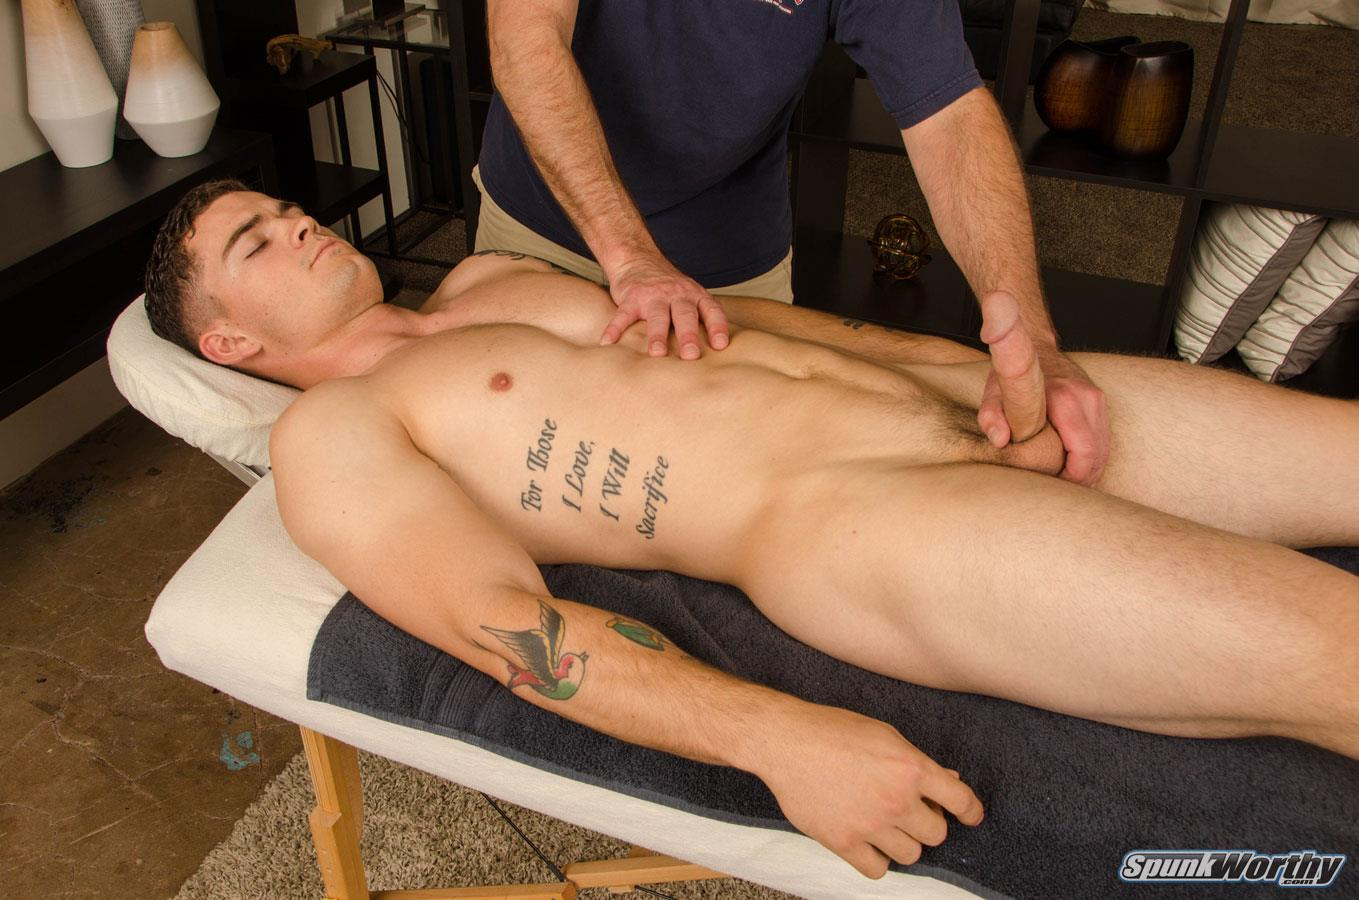 SpunkWorthy-Curtis-Marine-Massage-With-Happy-Ending-15 Beefy Straight Marine Gets A Gay Massage With A Happy Ending